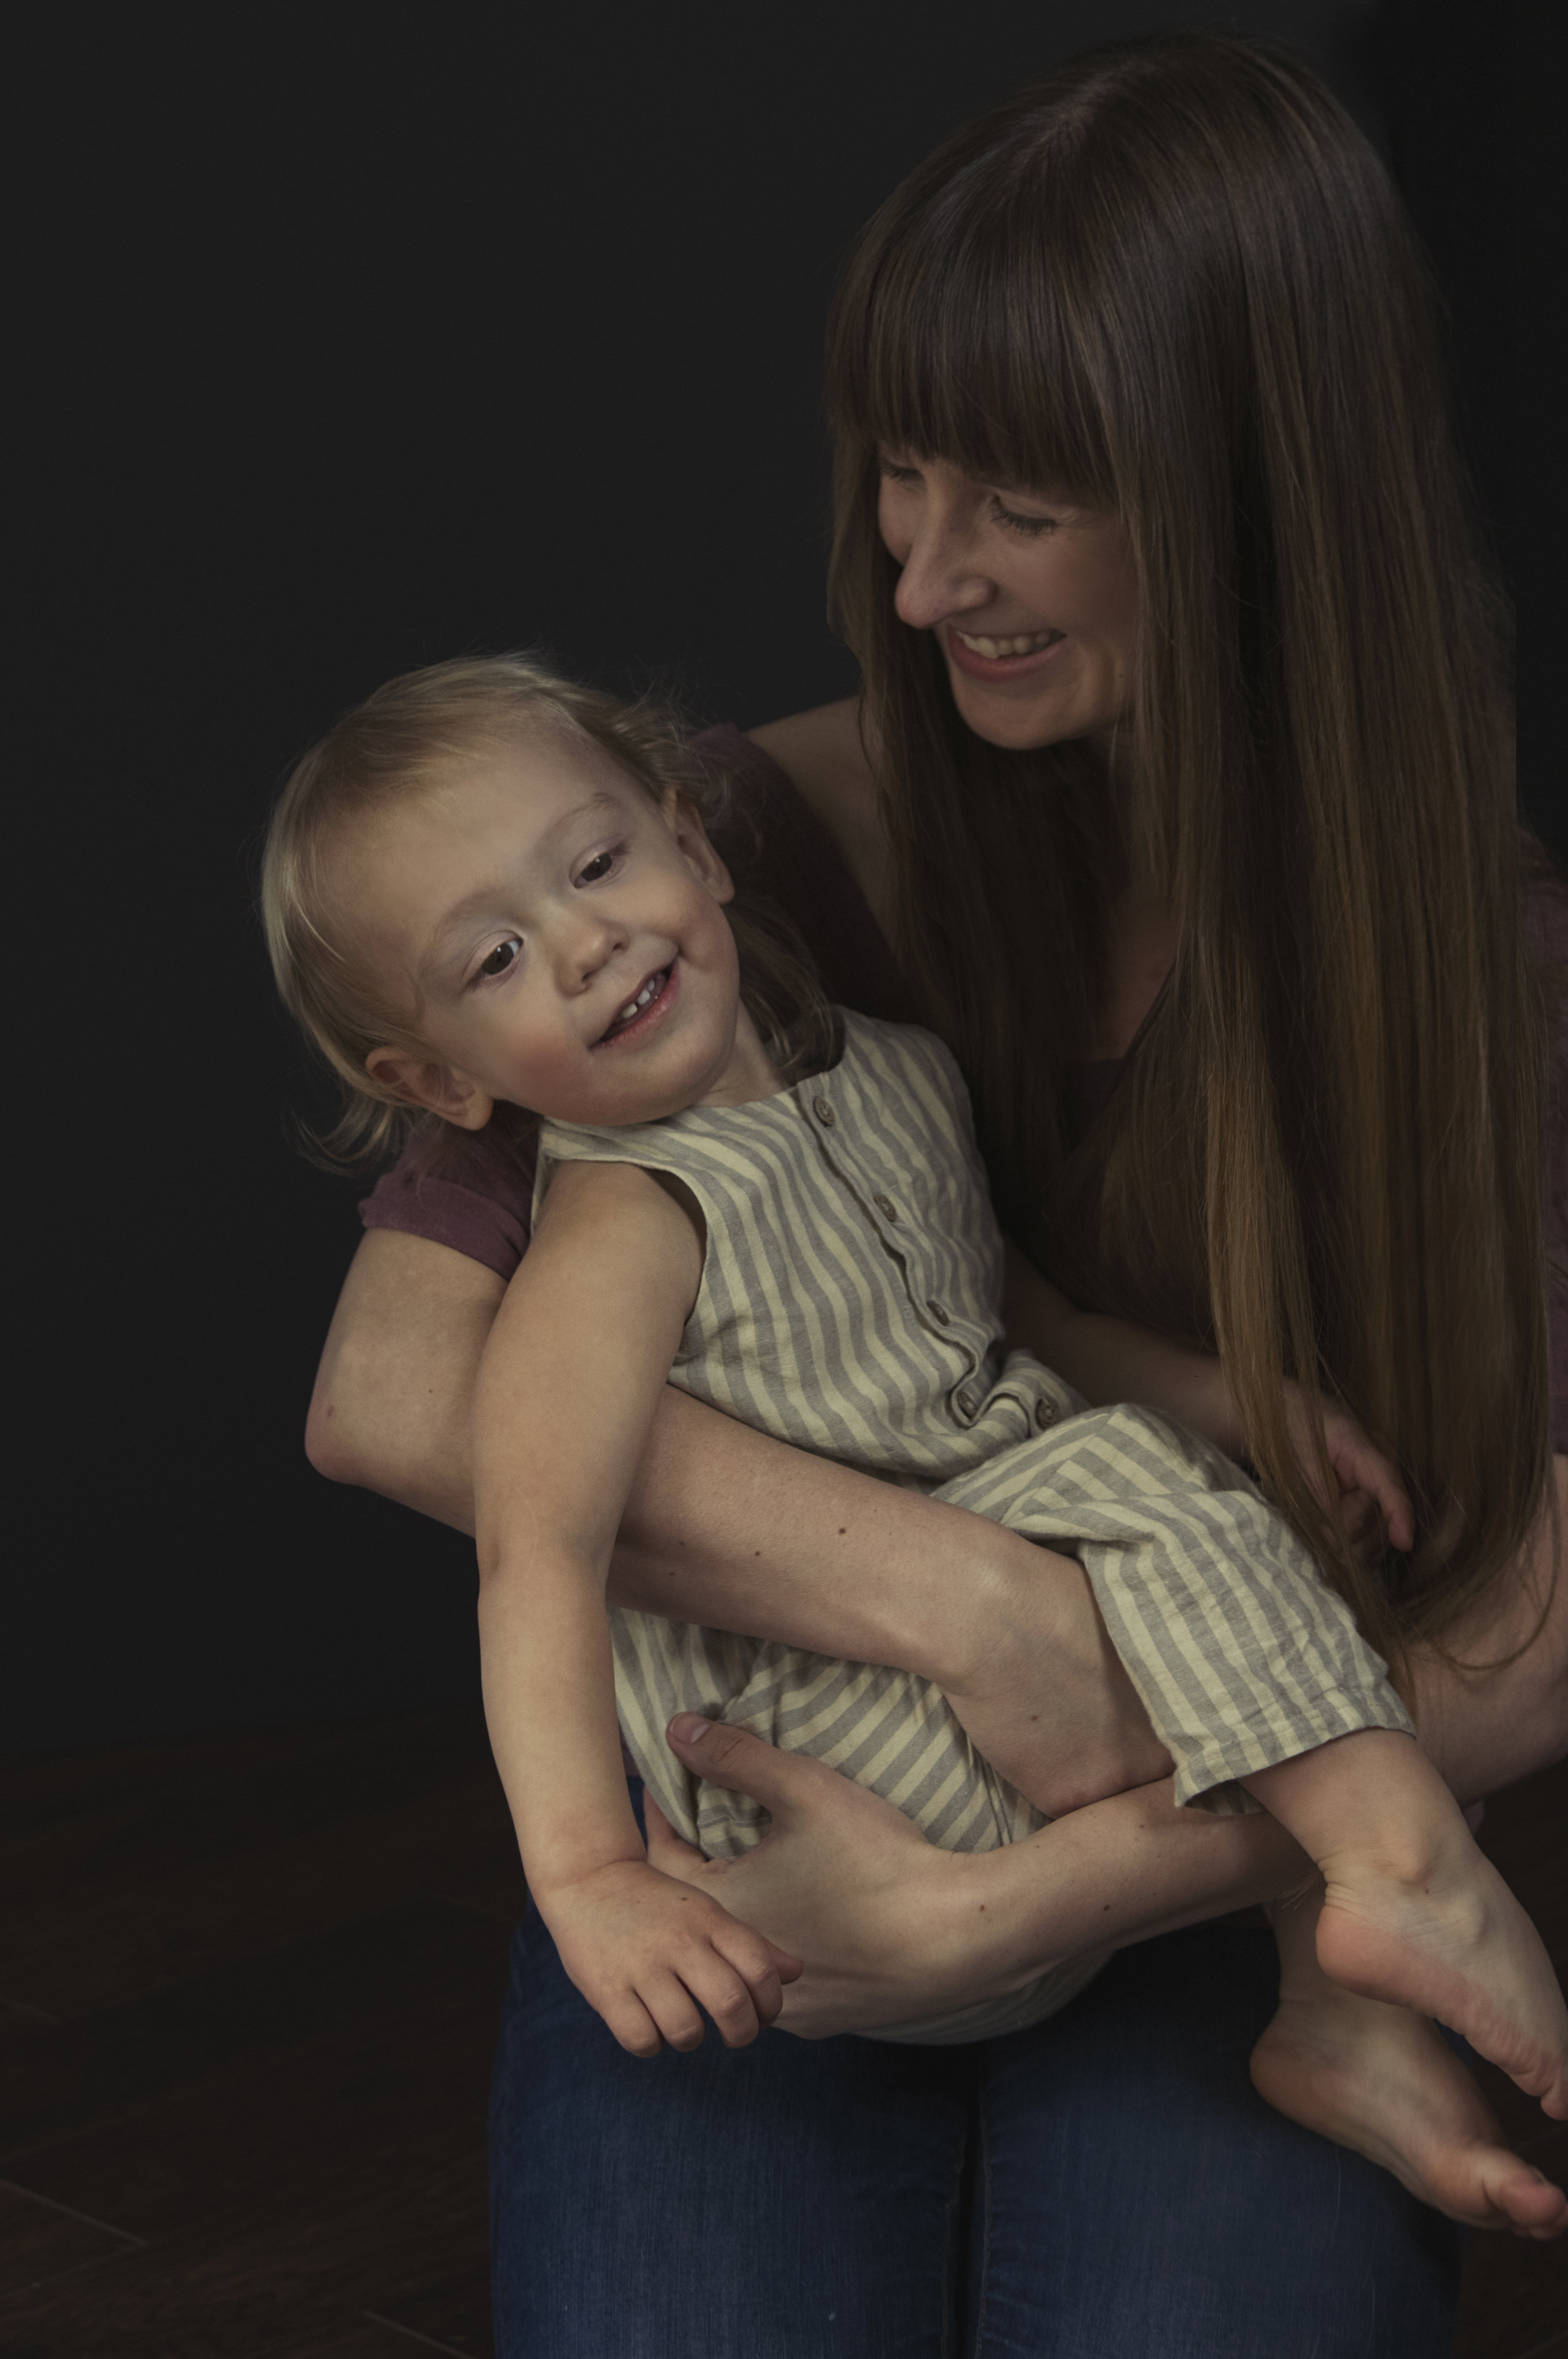 Heirloom Portrait Photographer | Mother and Son | Mothers Day Portrait | Jackie Daily Photography